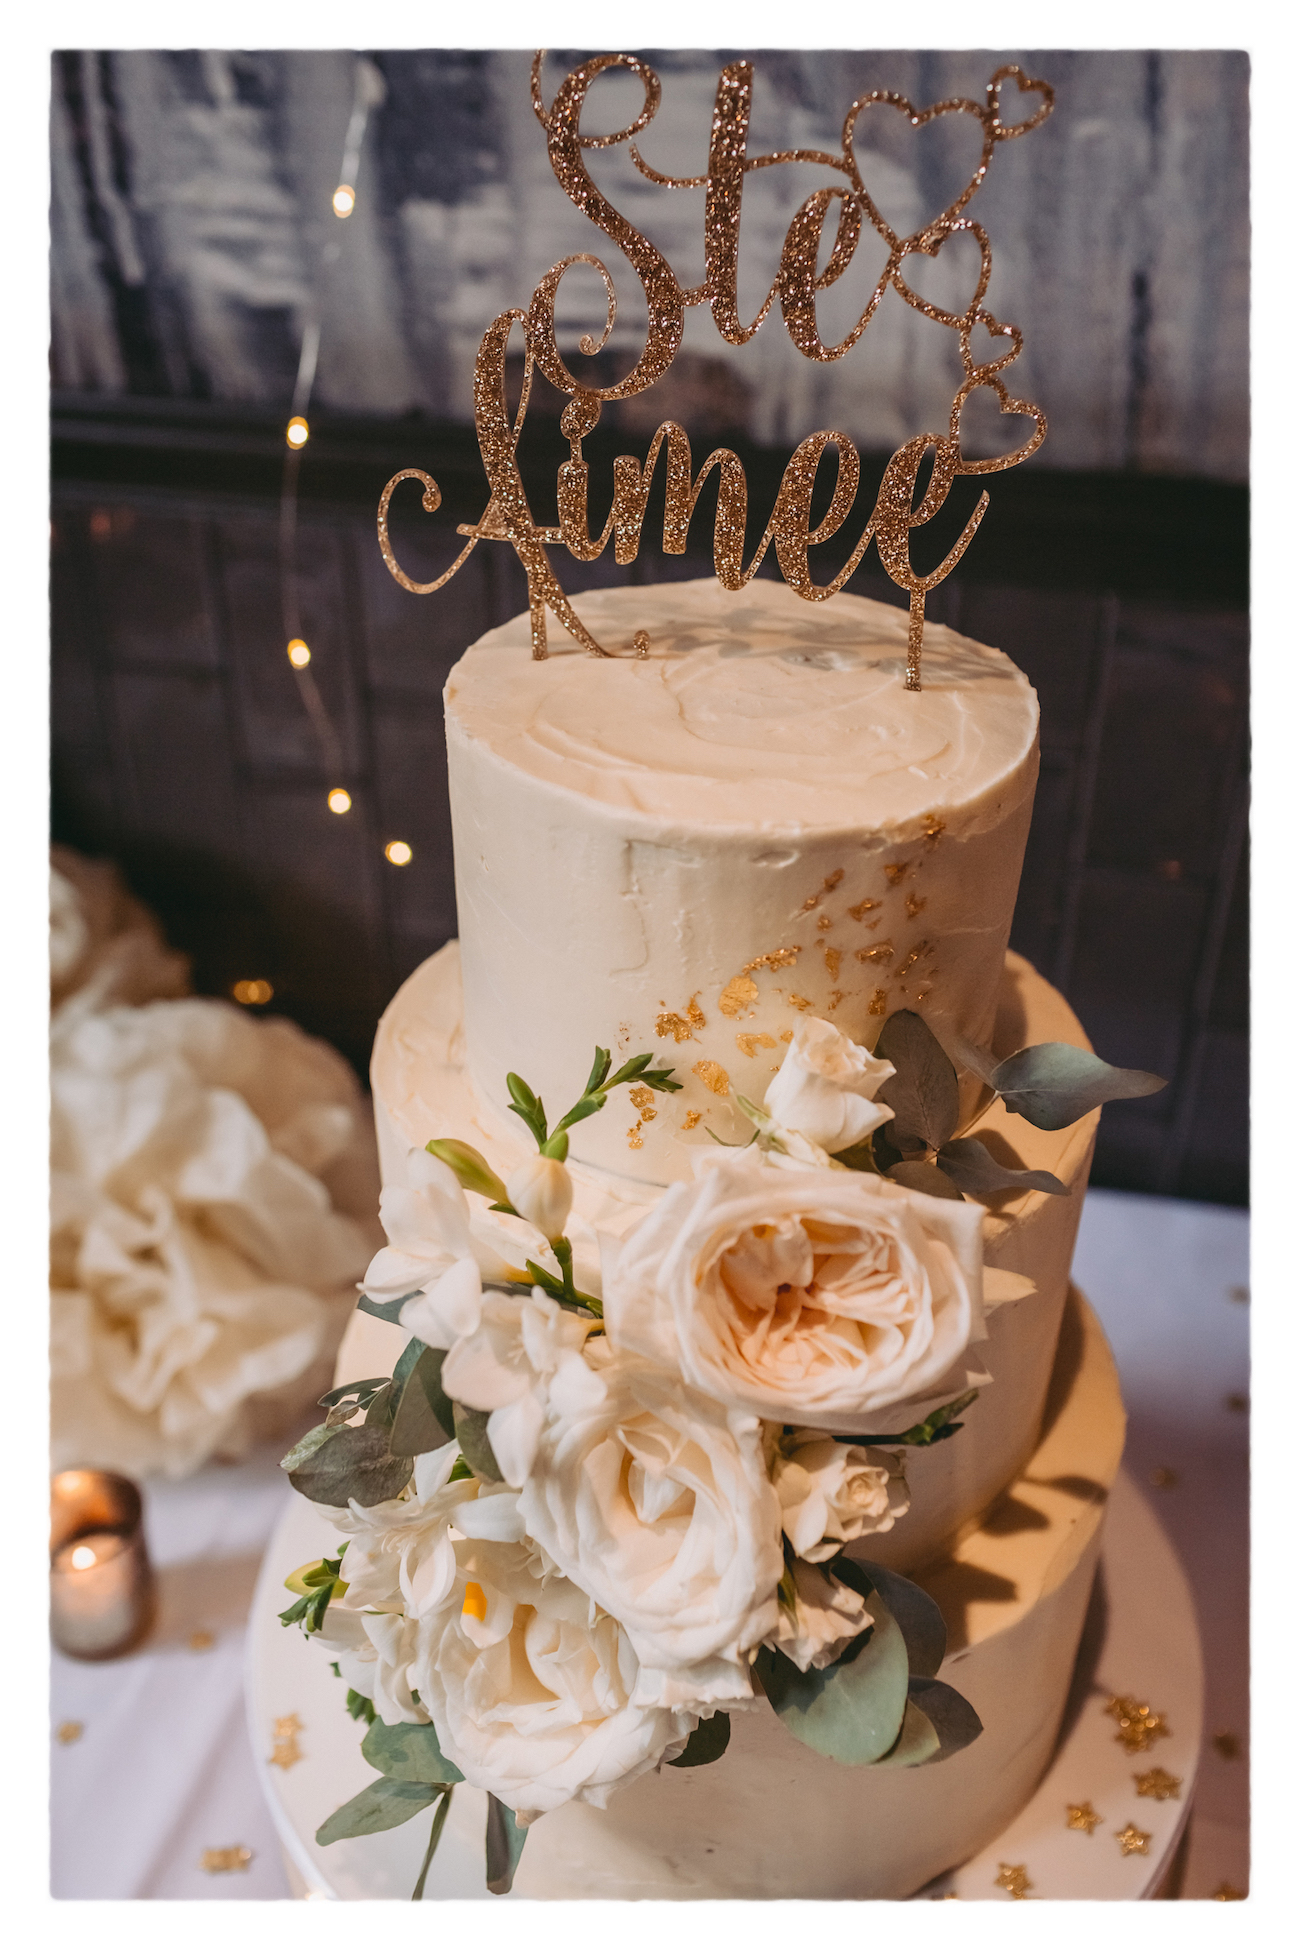 Buttercream wedding cake decorated with fresh flowers - photo by Alexander Newton Photography